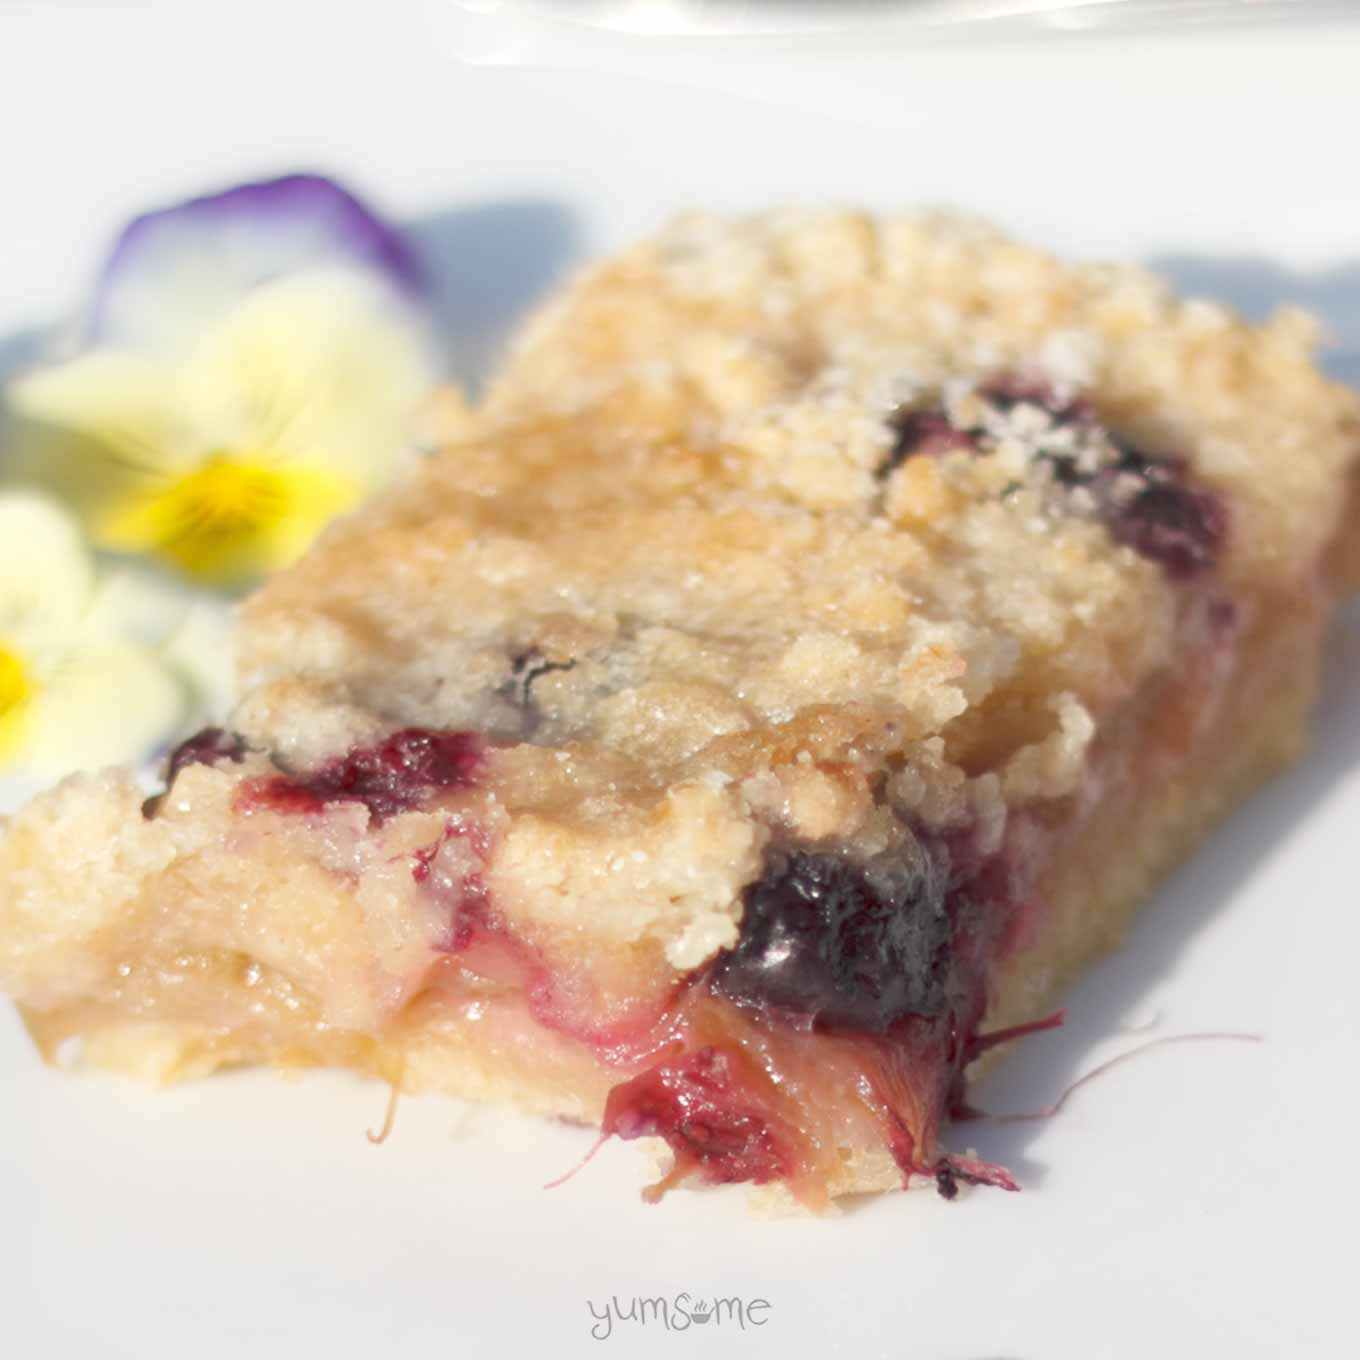 close-up of rhubarb crumble shortbread bars | yumsome.com